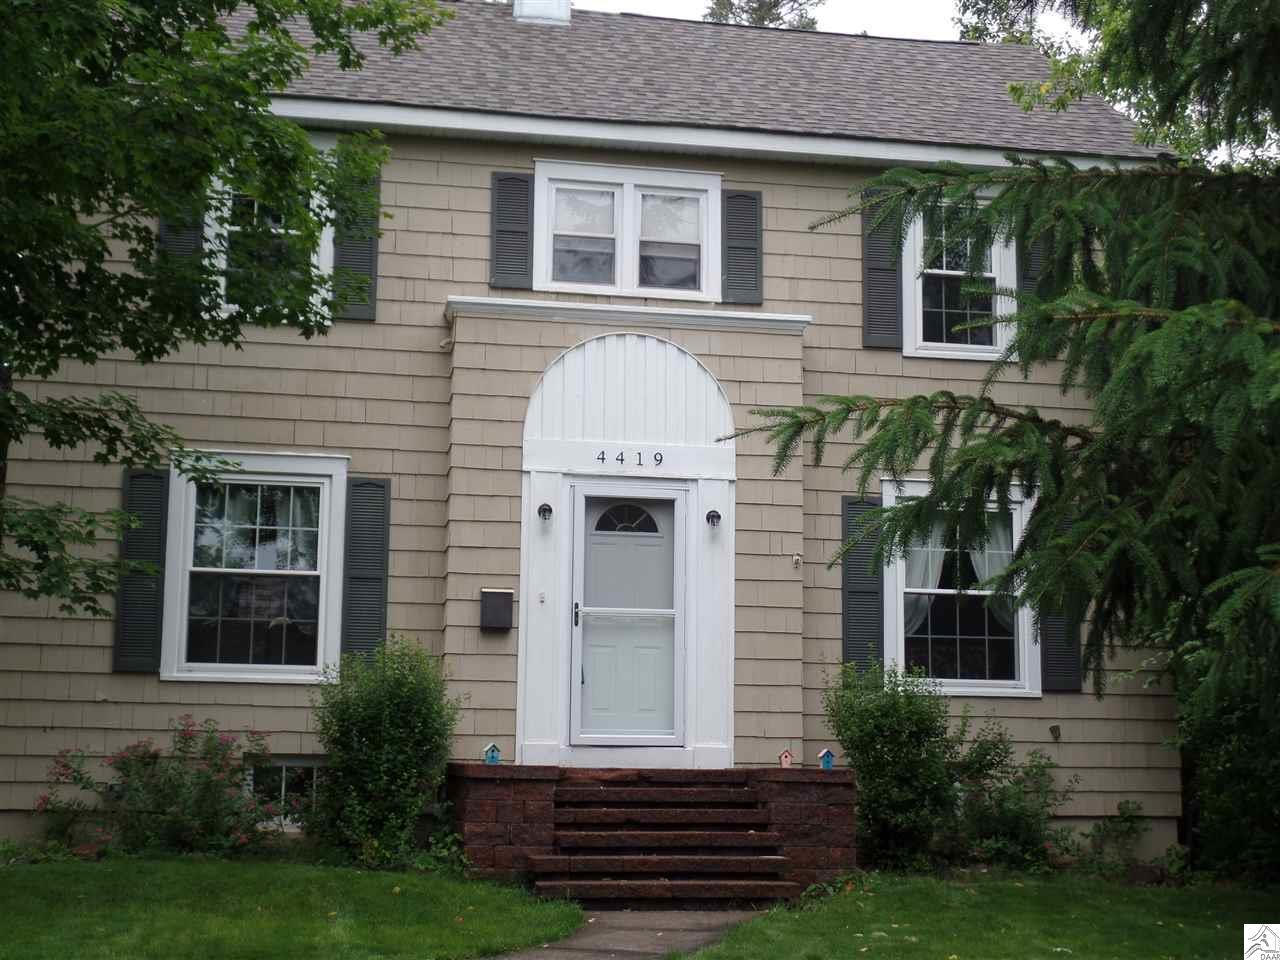 4419 luverne st duluth mn mls 6030244 coldwell banker